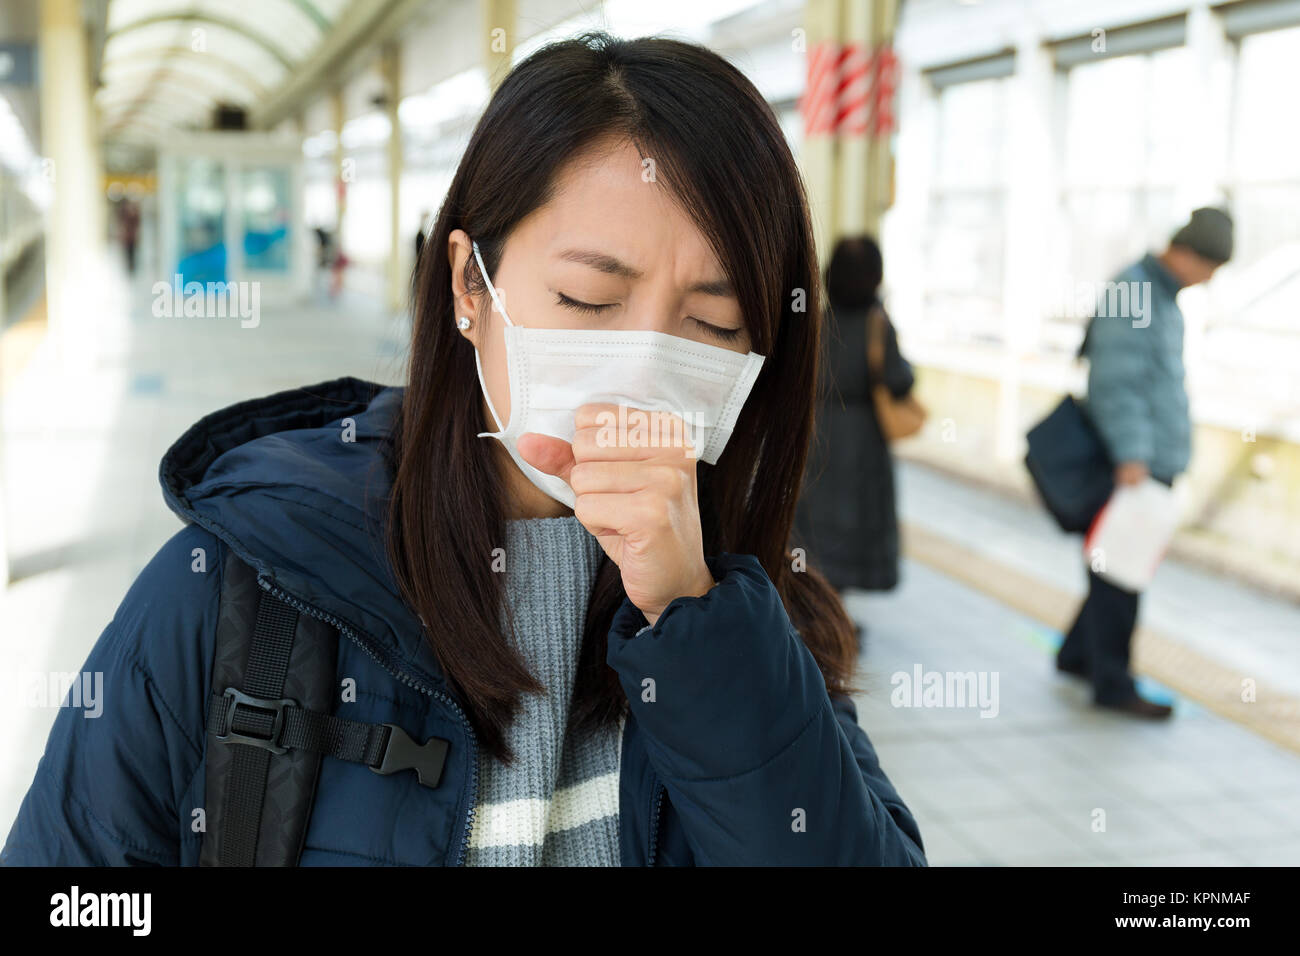 Woman suffer from sick with wearing face mask - Stock Image